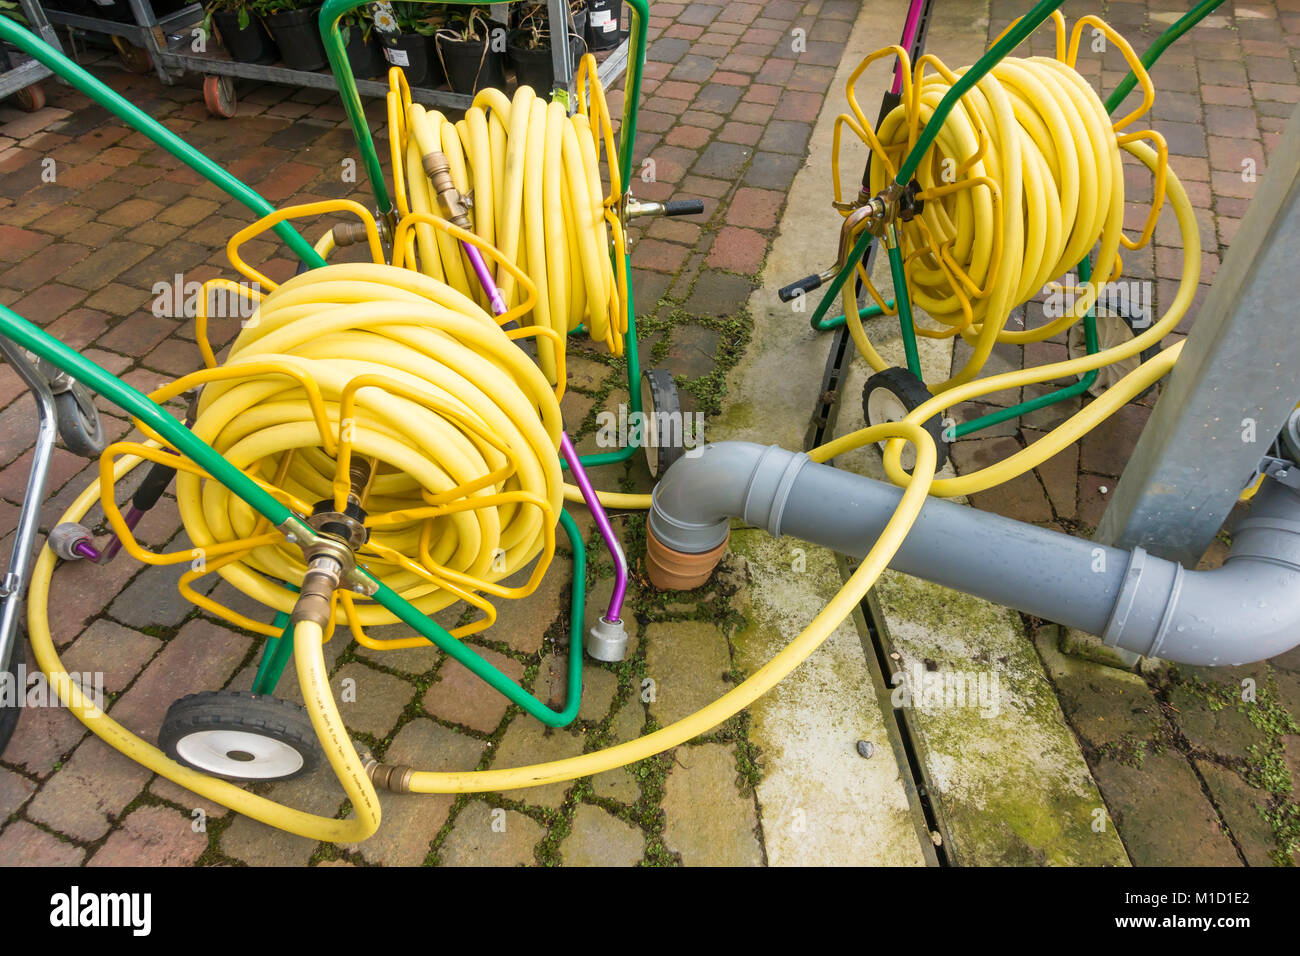 Three Market Garden Hose Reels With Yellow Kink Resisting Hose On Portable  Reels And Having Spray